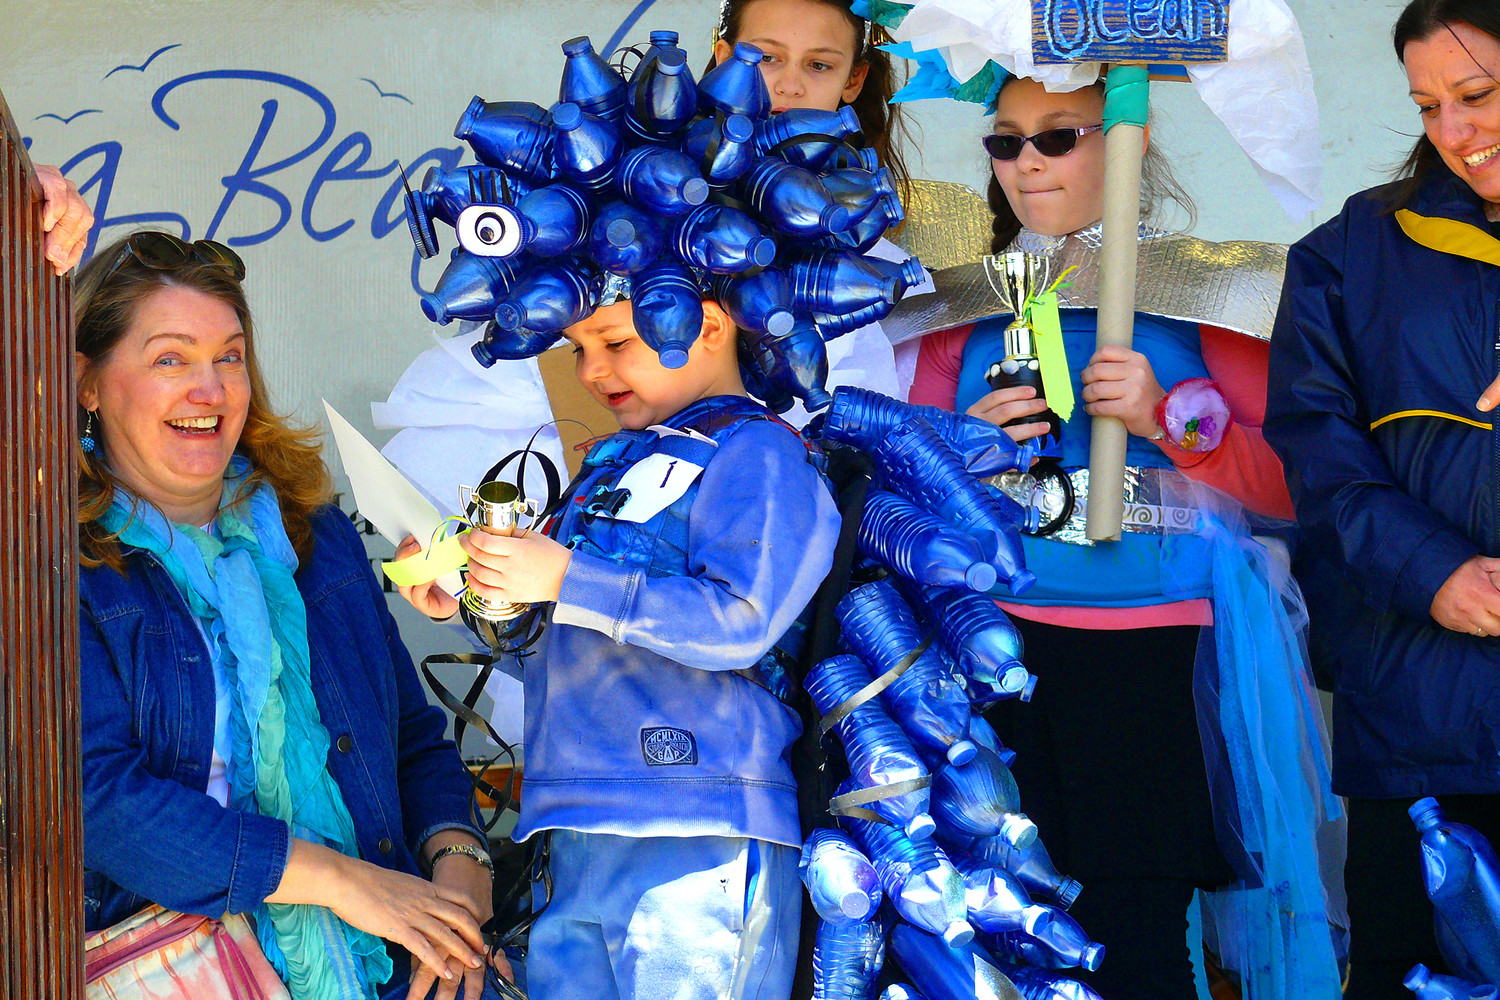 Director of Development for the LBNY-Arts Council Elizabeth Connolly awarded Lorenzo Herman a prize for his creative sea creature costume on Sunday at the Jellyfish Jamboree Earth Day celebration.